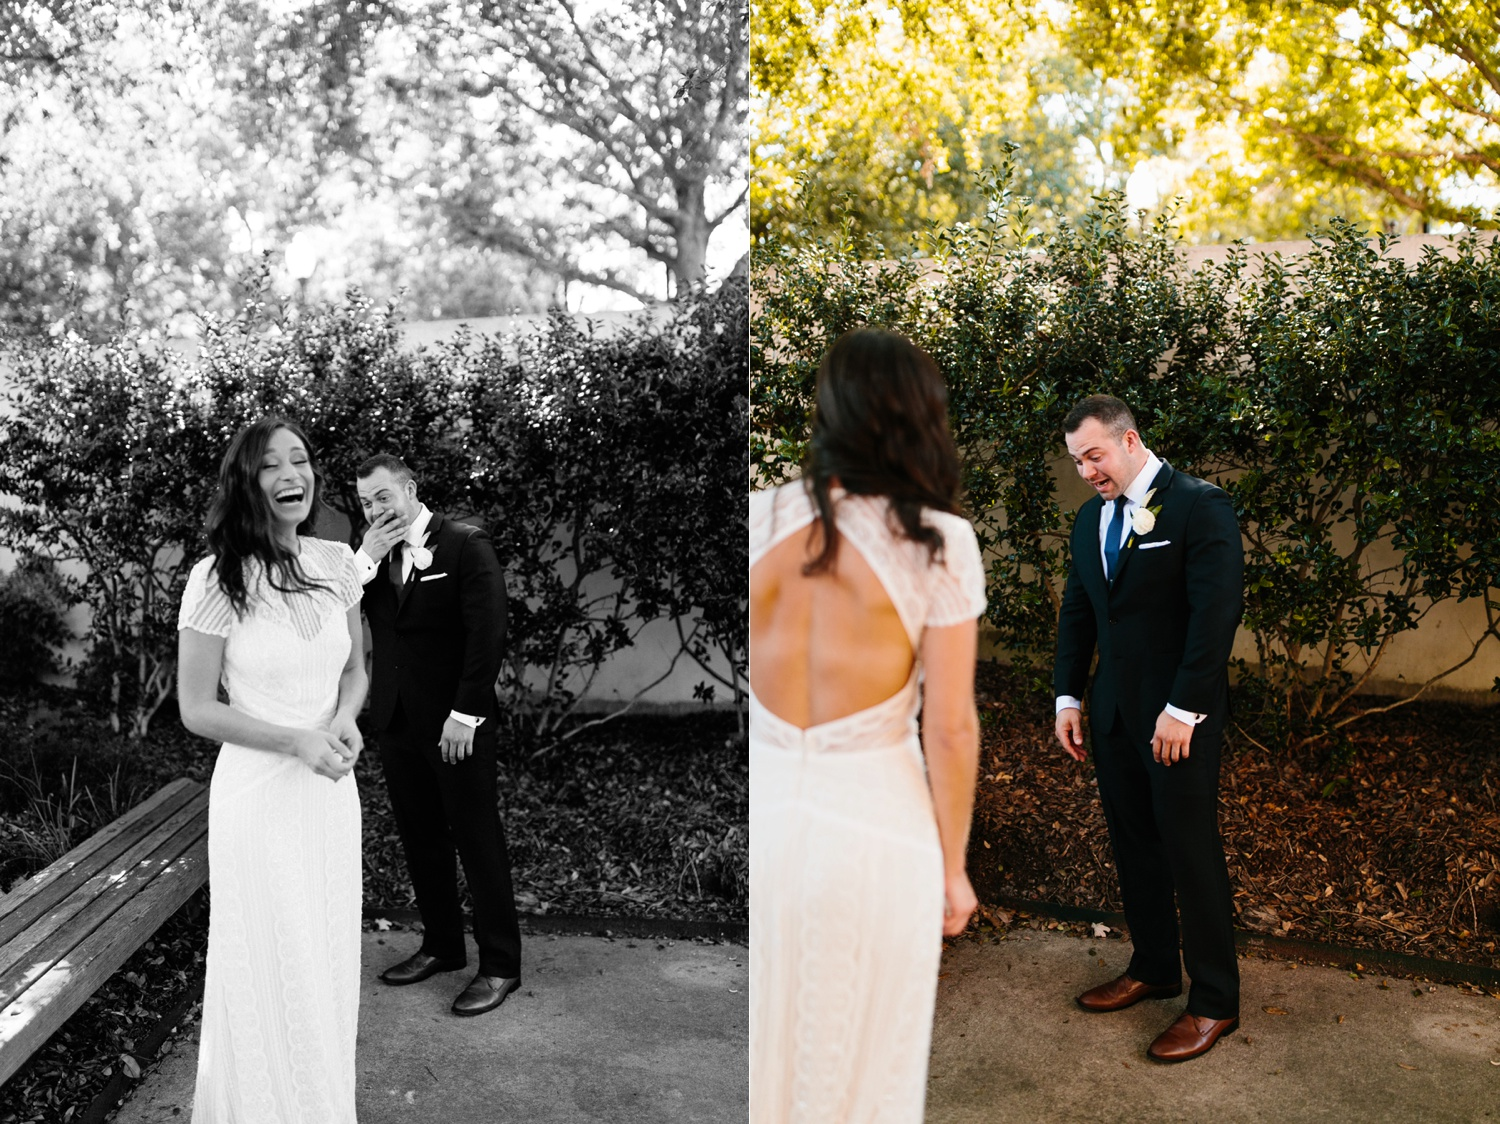 Kadee + Tyler | a raw, emotional wedding at the Filter Building on White Rock Lake in Dallas, TX by North Texas Wedding Photographer, Rachel Meagan Photography 066